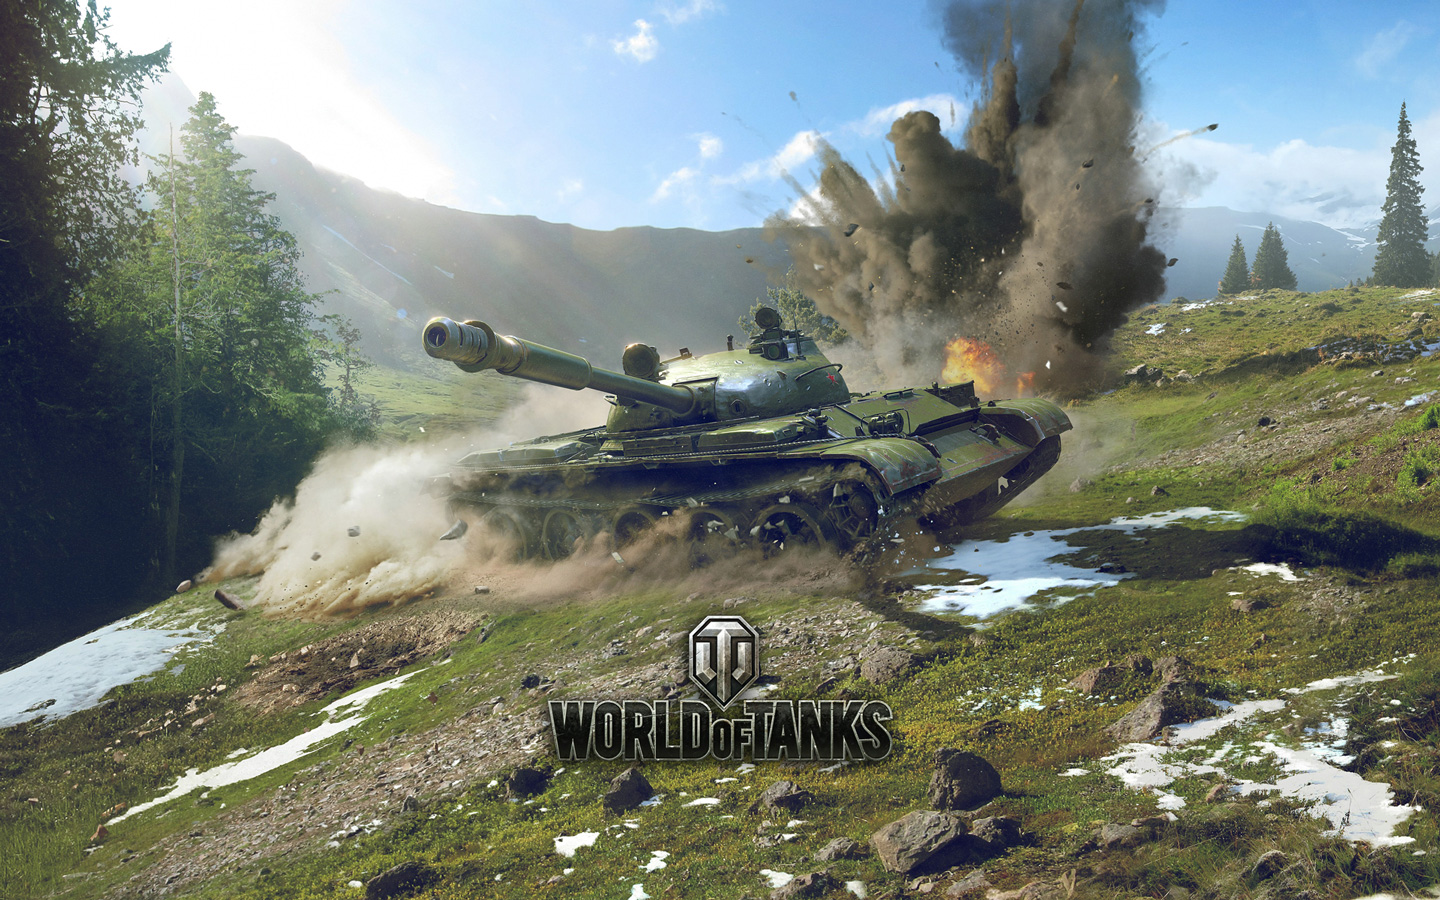 Free World of Tanks Wallpaper in 1440x900